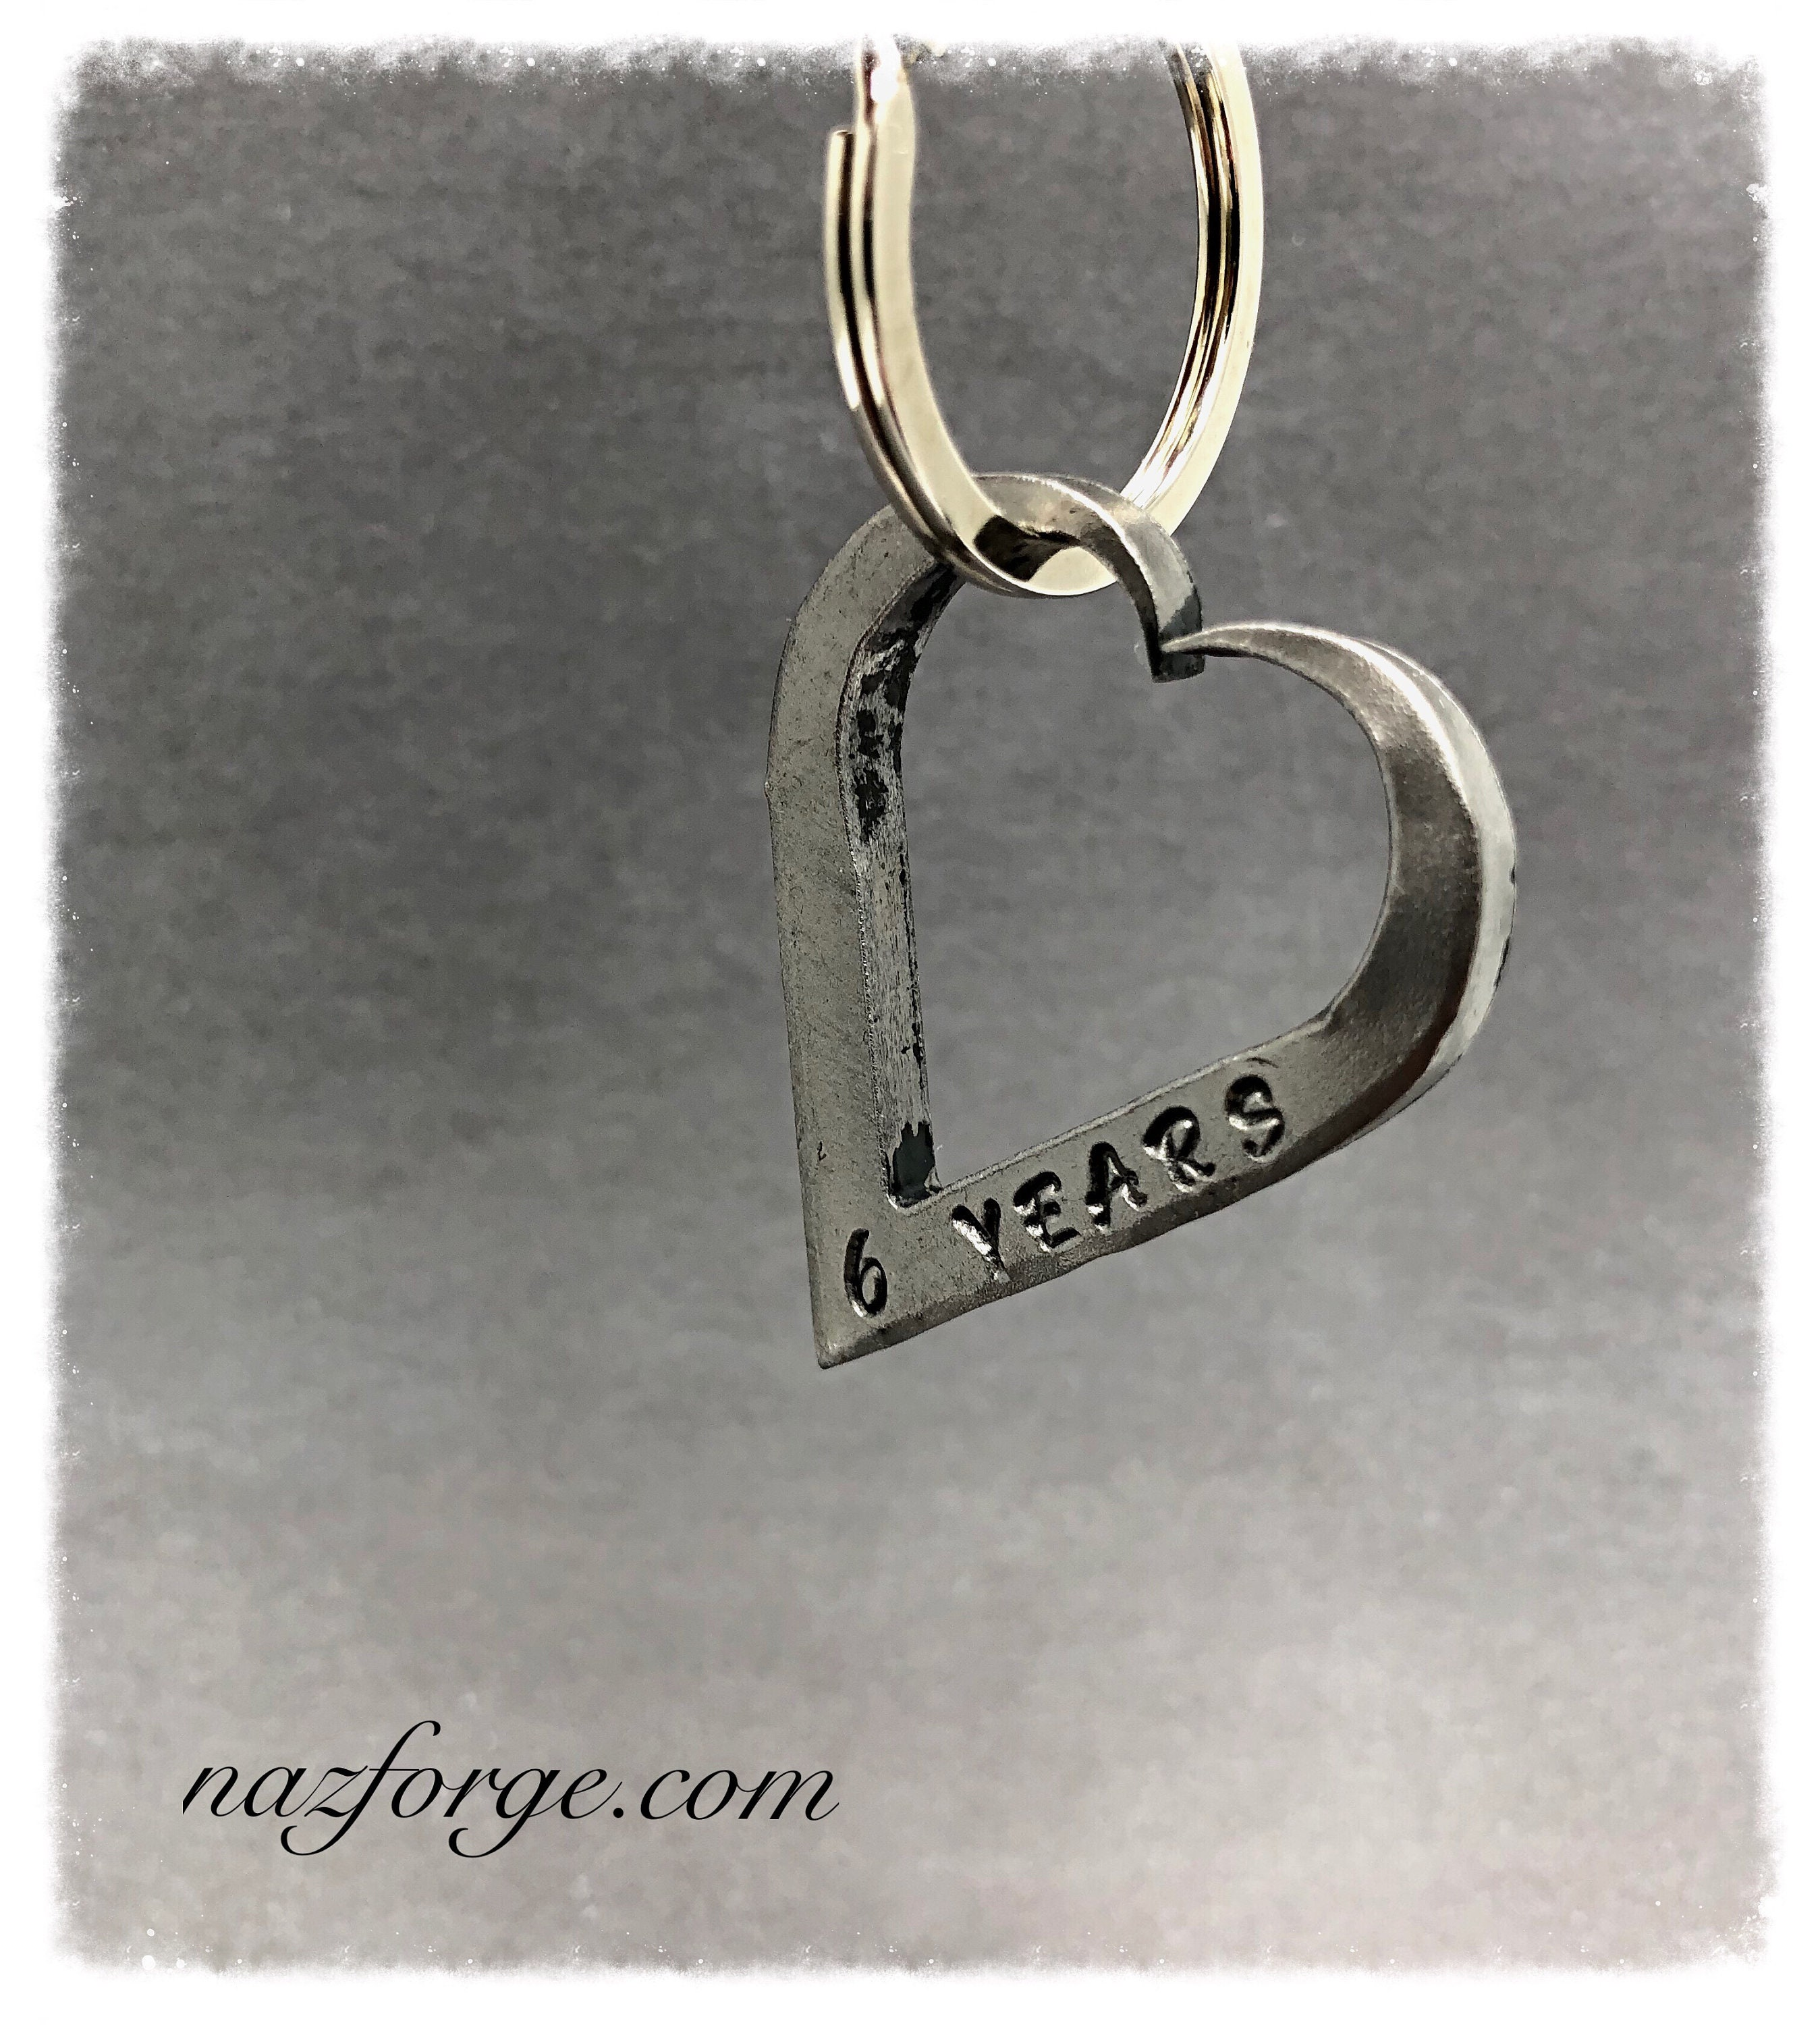 Sixth Wedding Anniversary Gift Ideas For Him: 6th Wedding Anniversary Iron Keychain Gift Idea For Wife